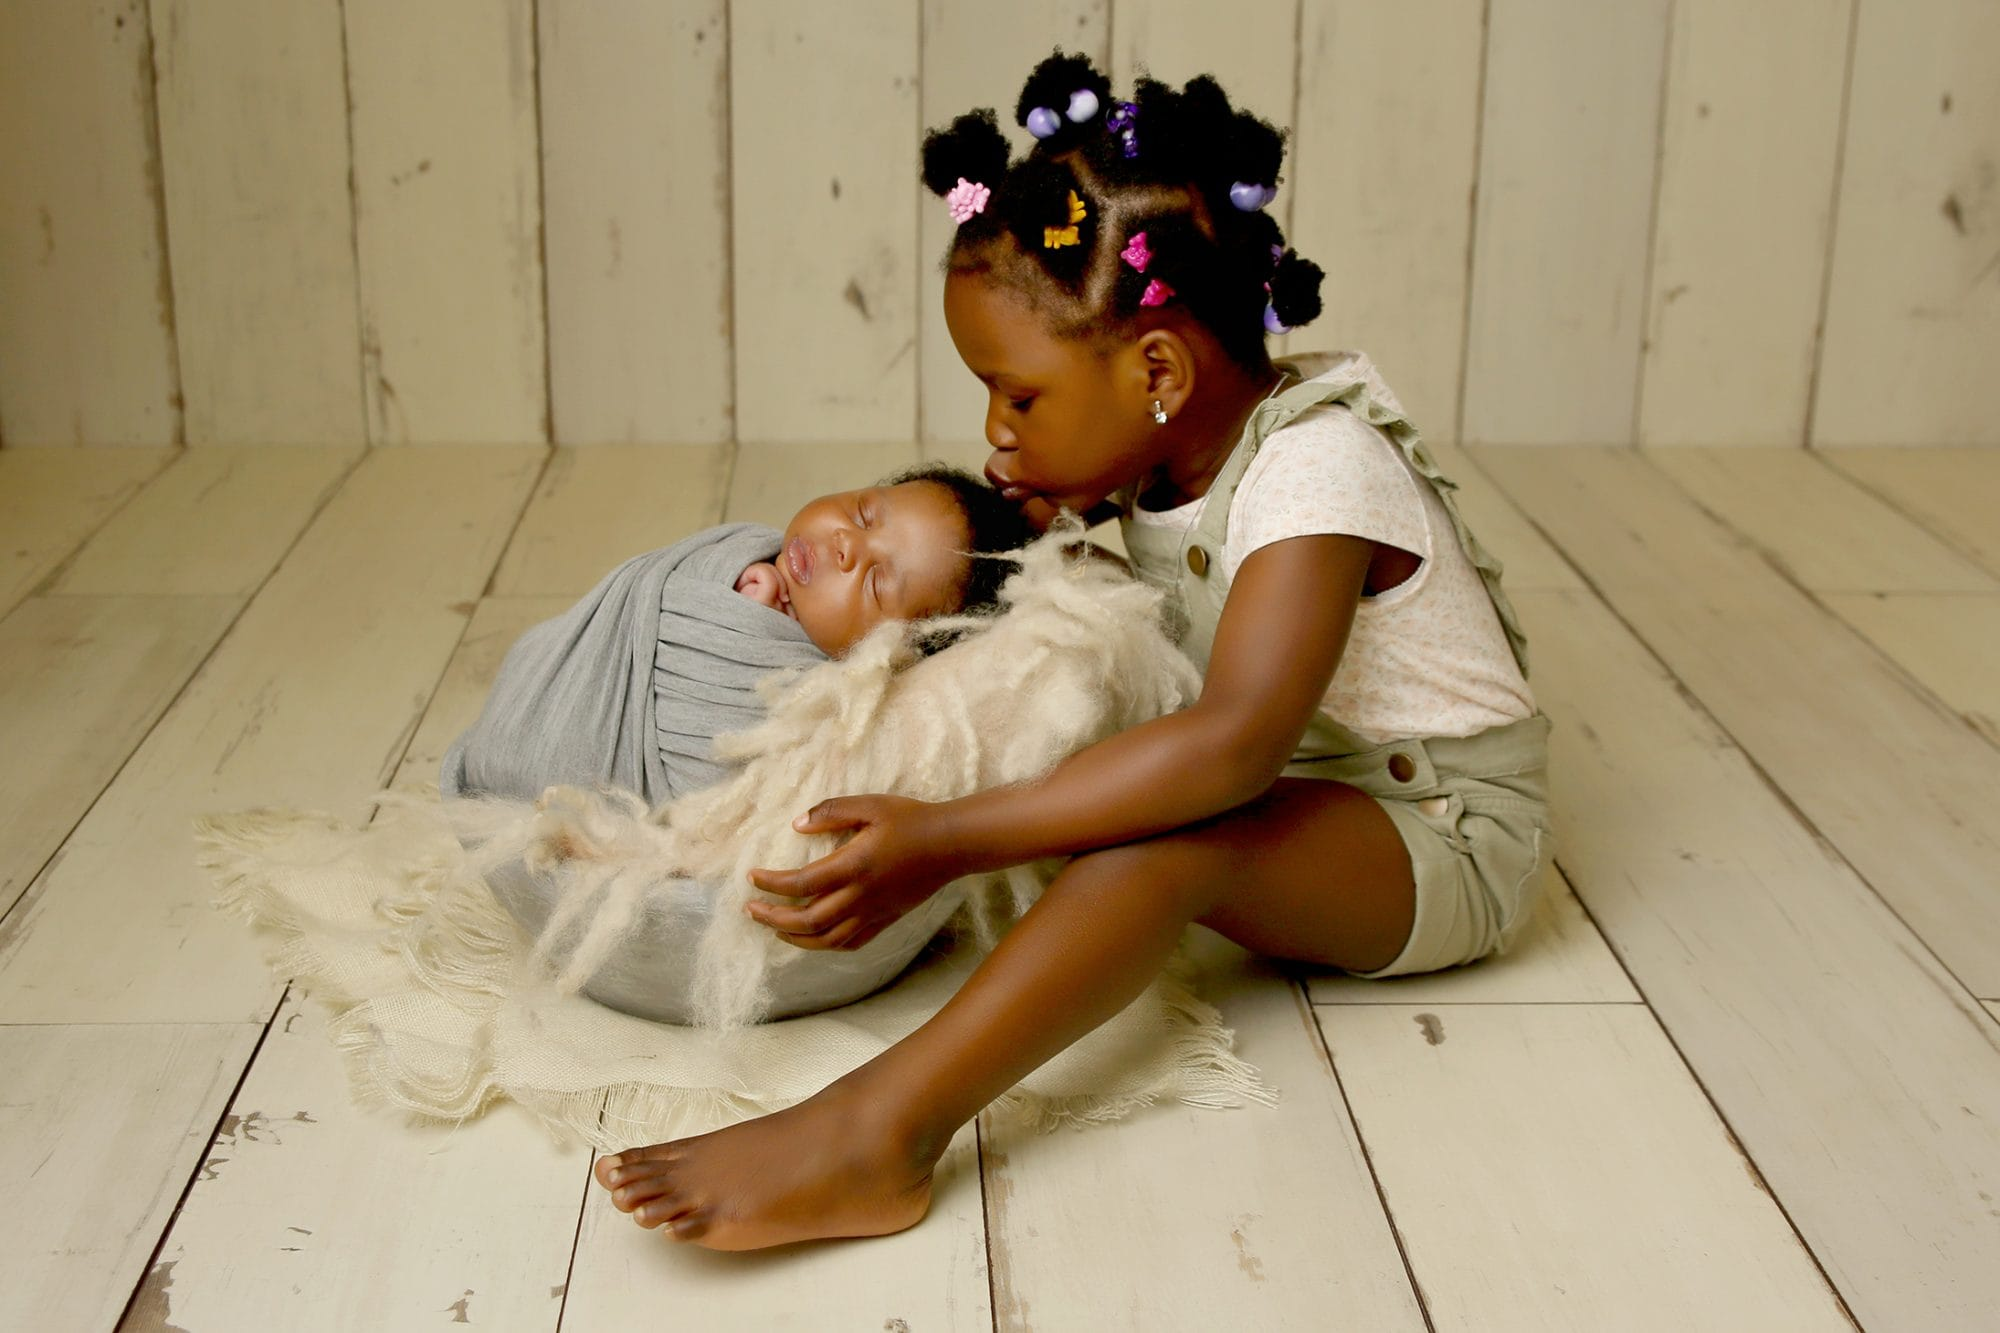 a nigerian girl sat kissing her newborn baby brother who is asleep in a grey bowl